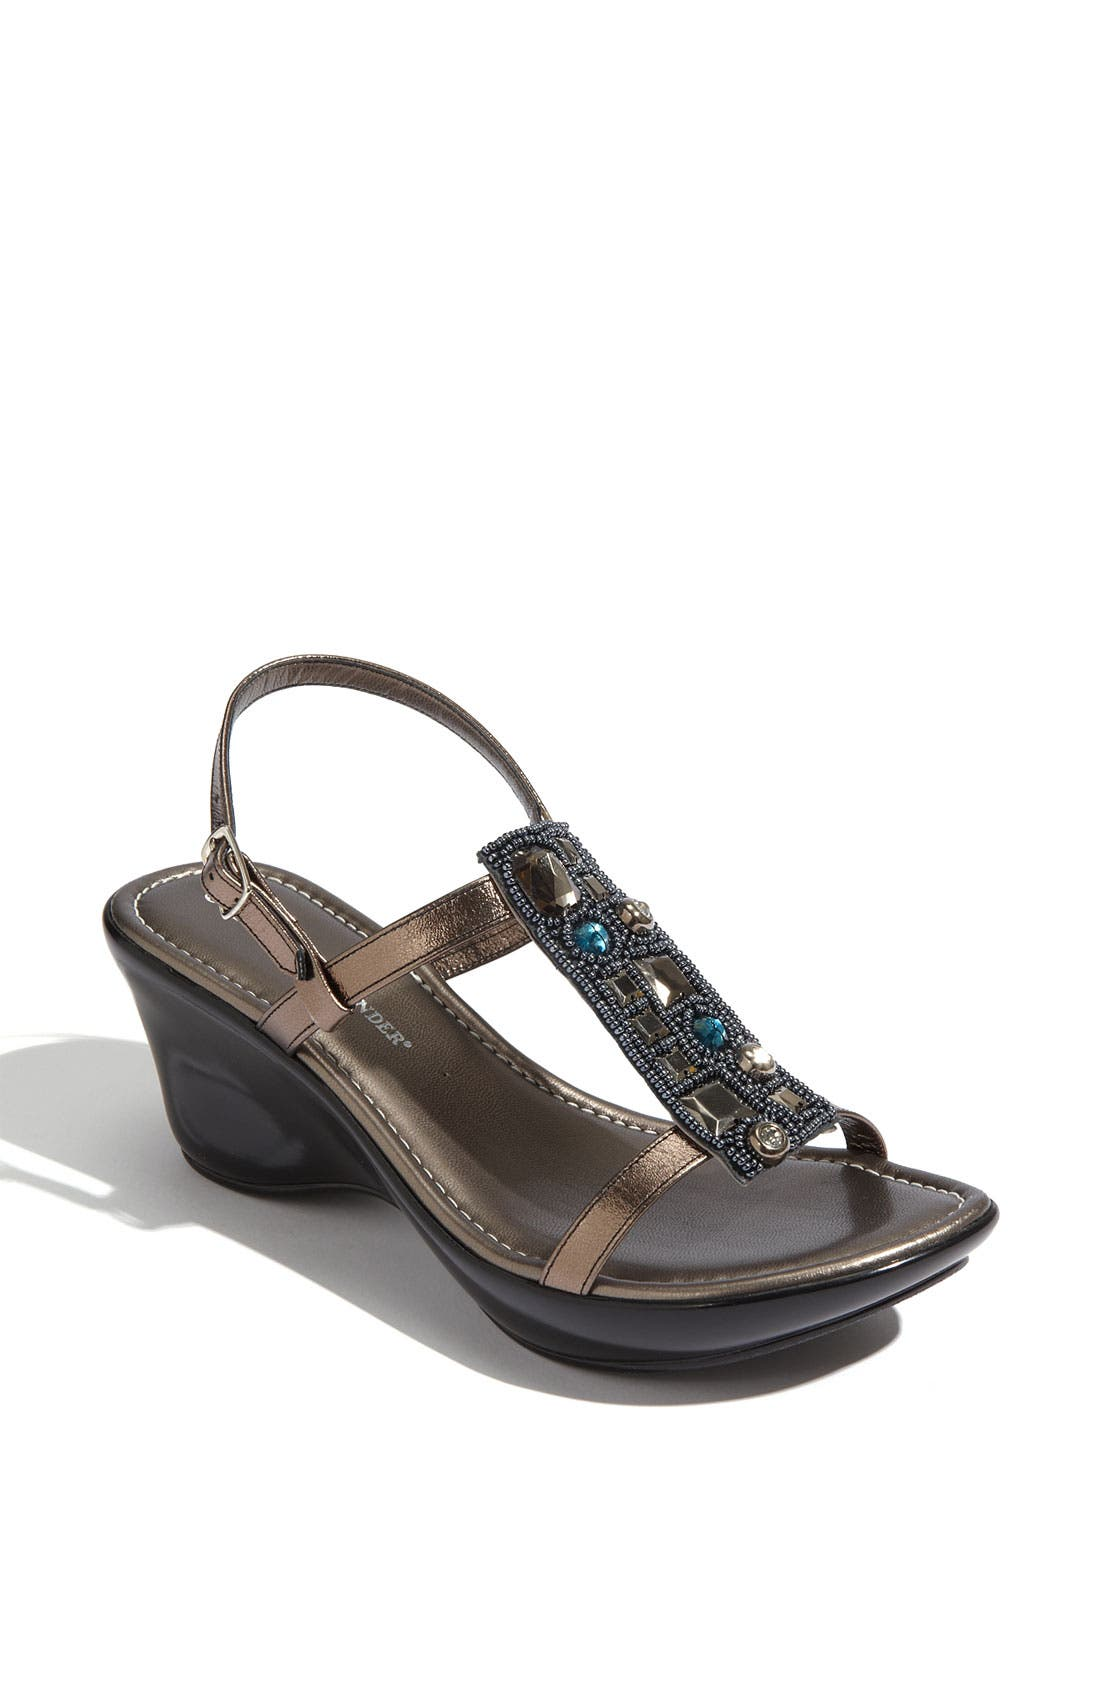 Alternate Image 1 Selected - Athena Alexander 'Marina' Sandal